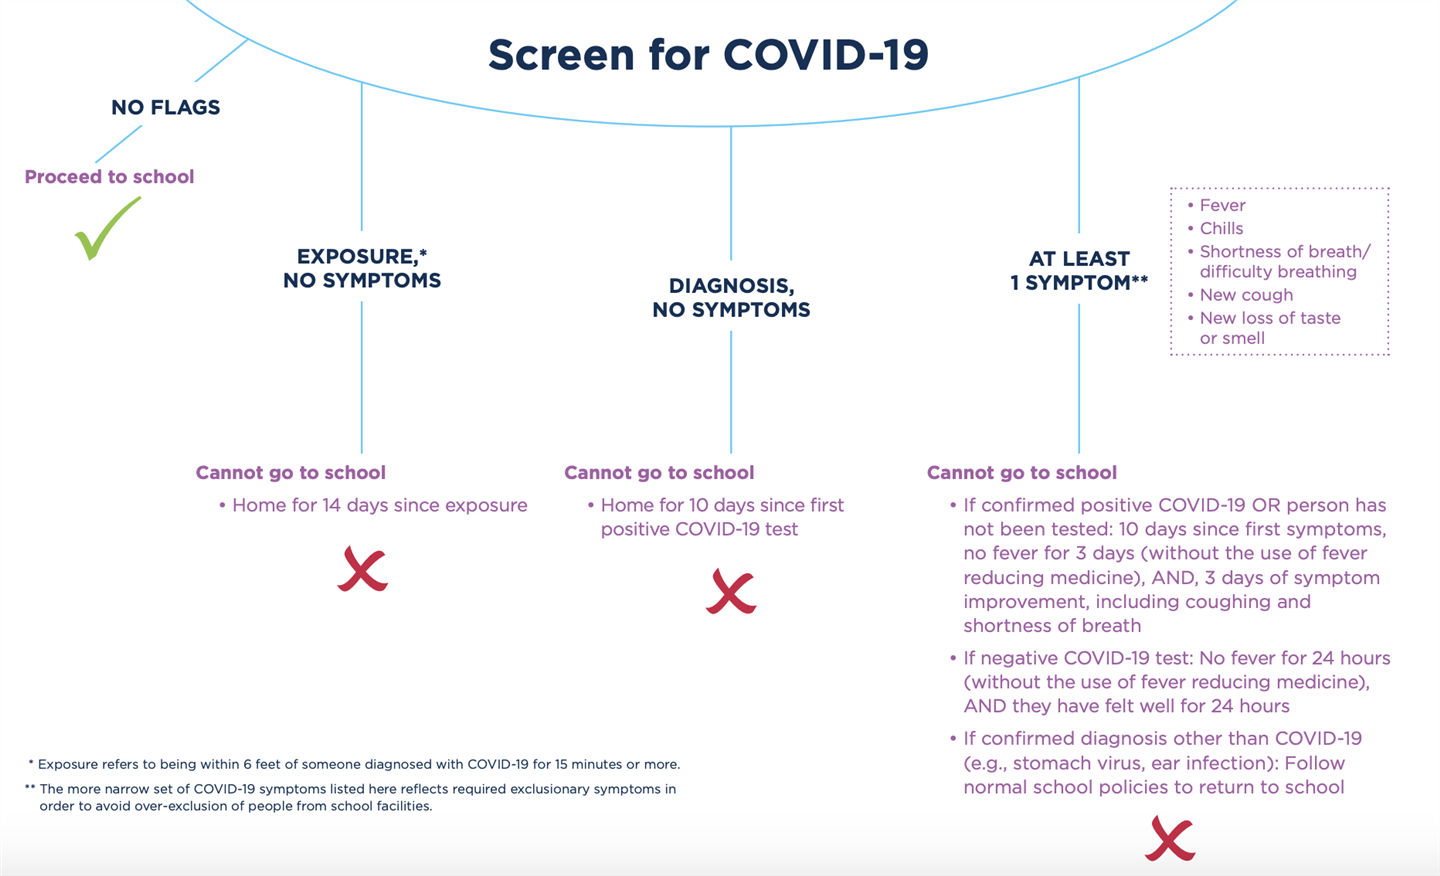 Screen for COVID-19